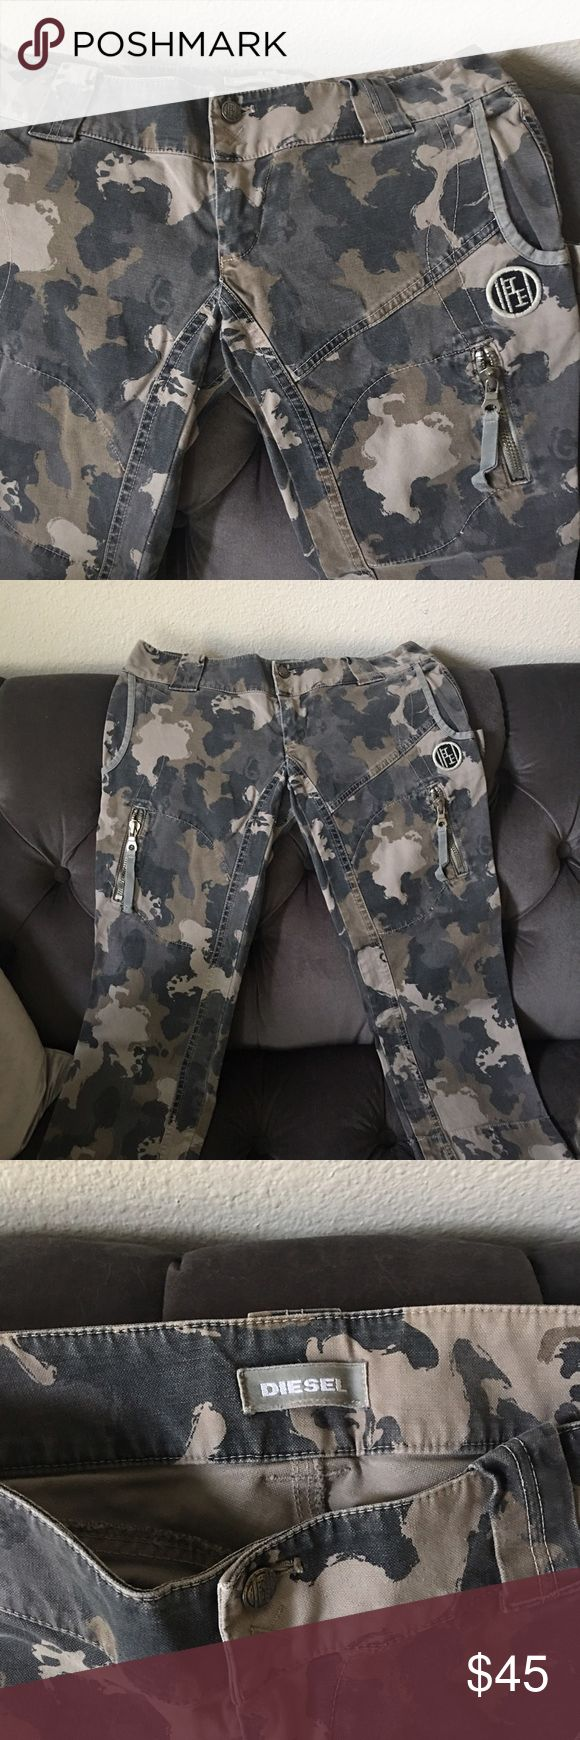 Diesel brand camo capris. Like new! Bought years ago but only wore a few times. They are fitted and sexy! Low waisted. Diesel Pants Capris